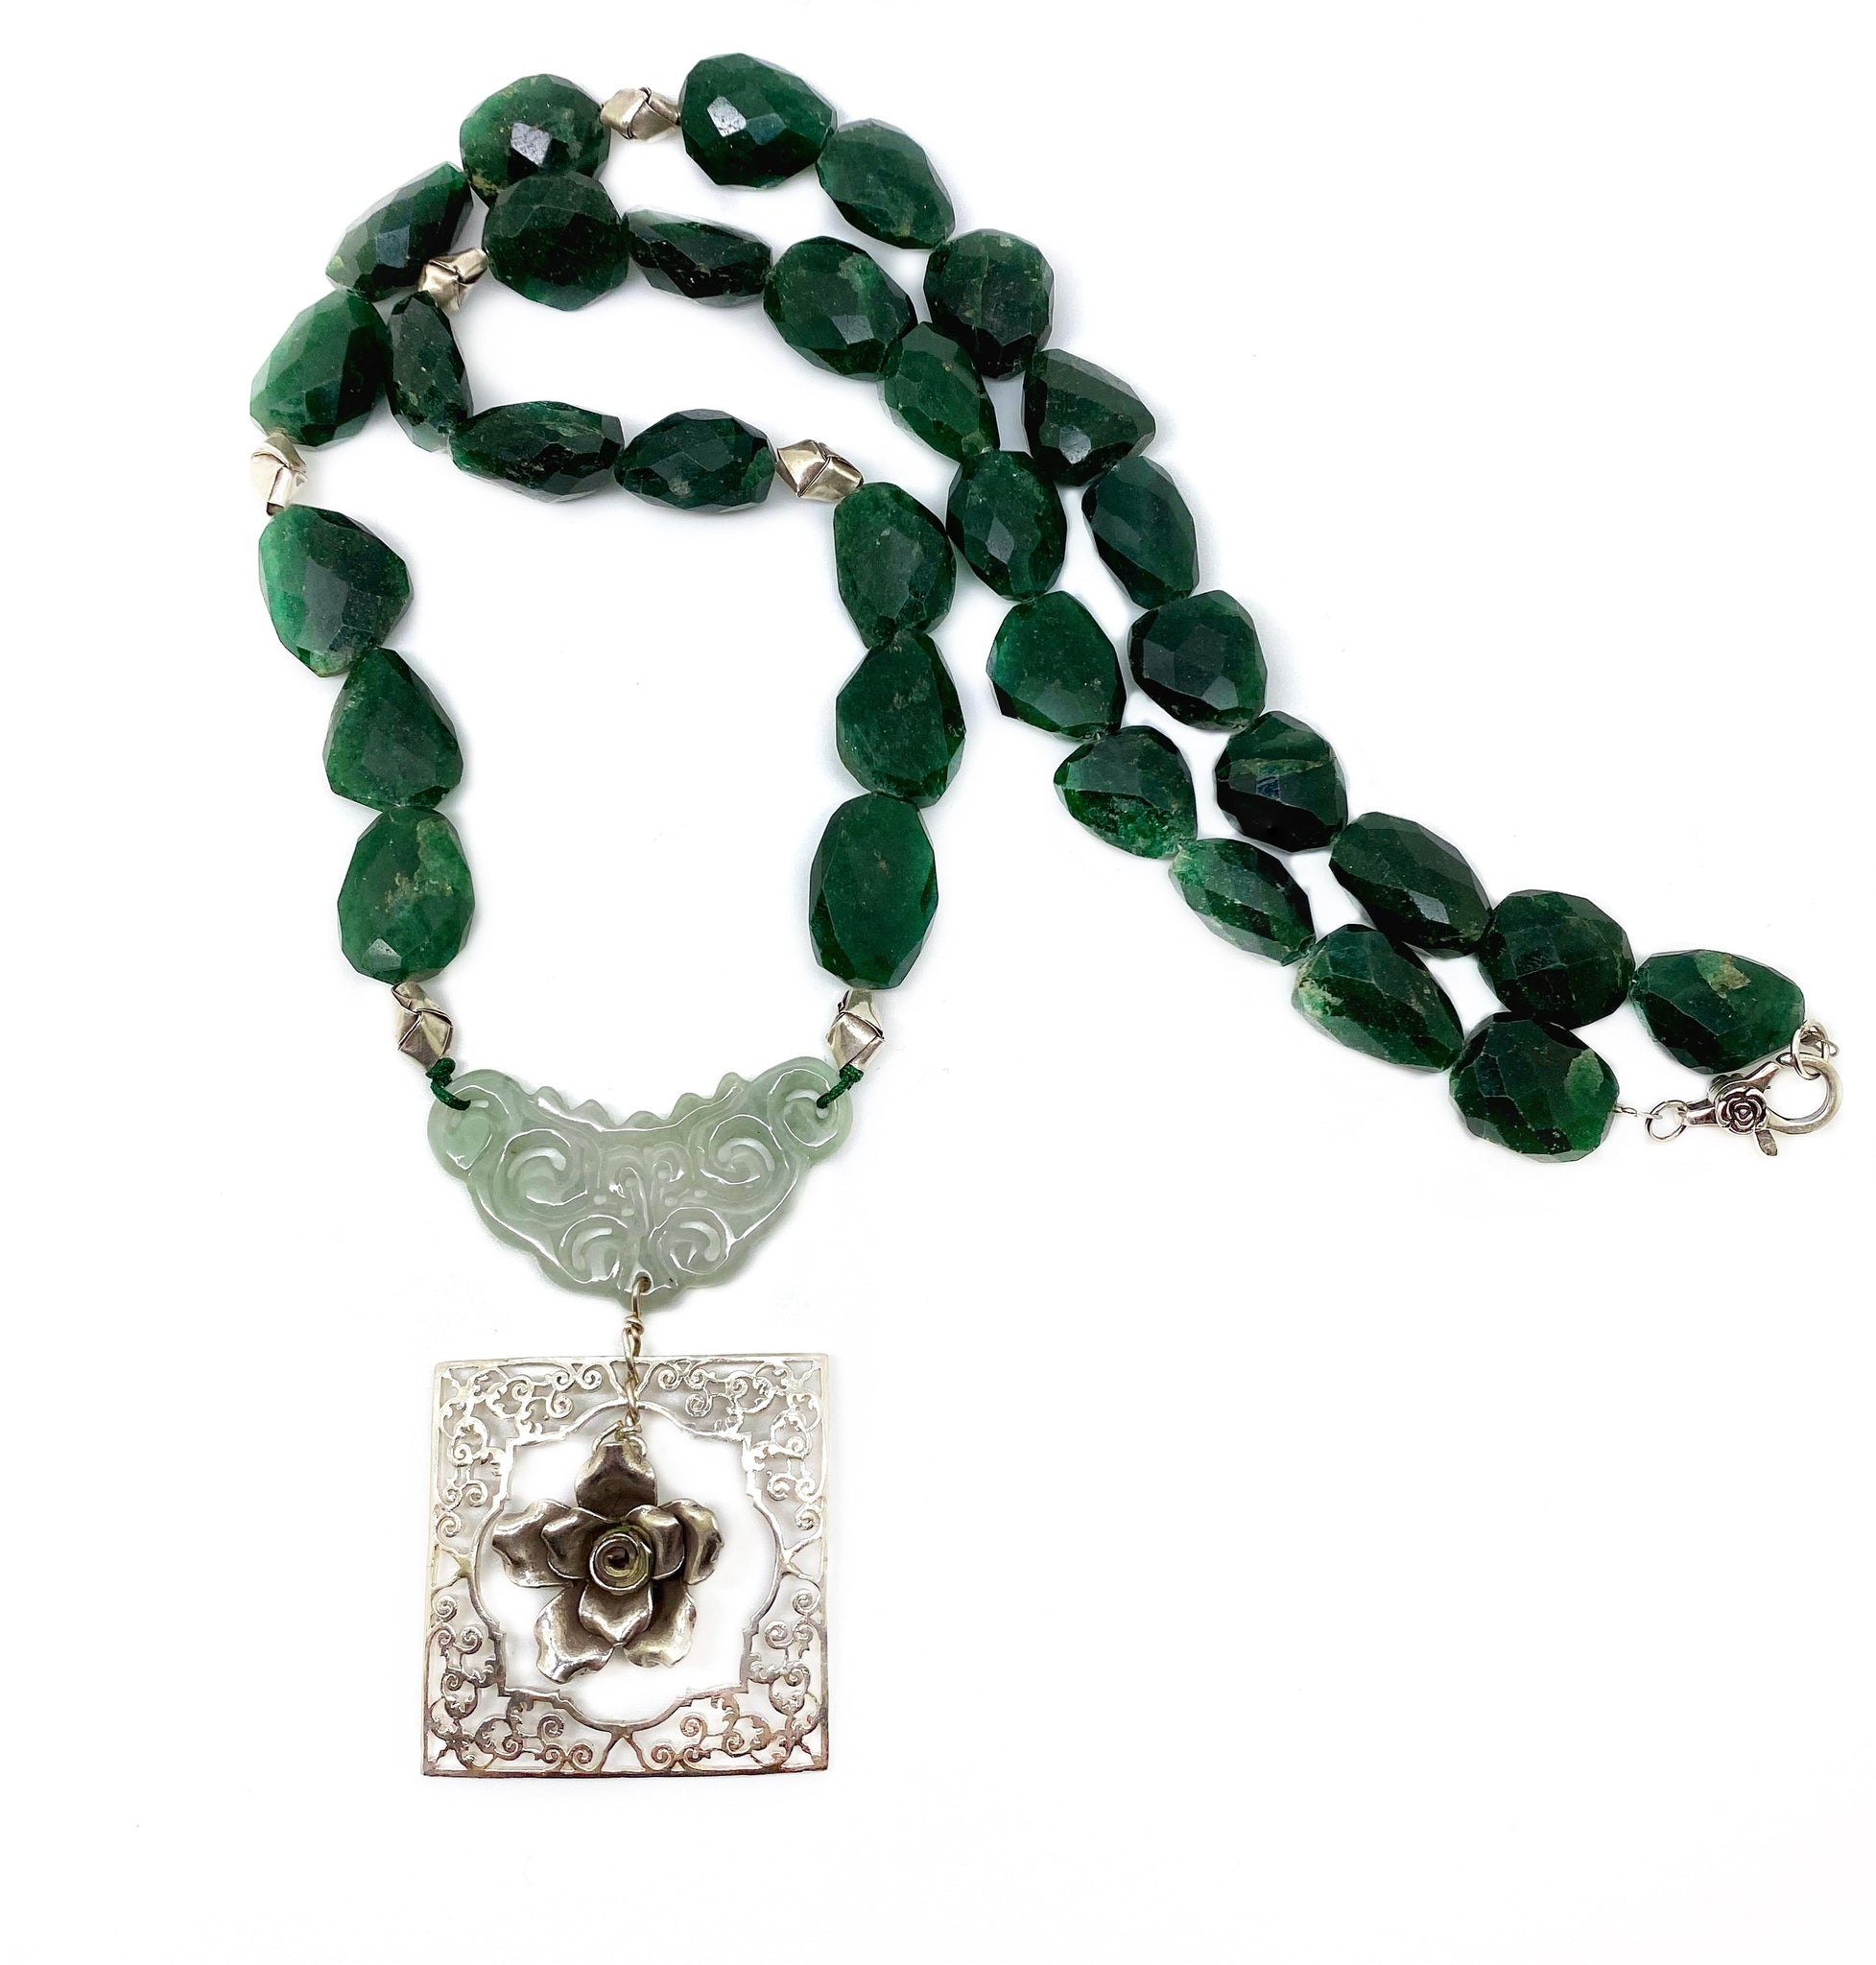 NEW - Carved Jade and green Aventurine necklace